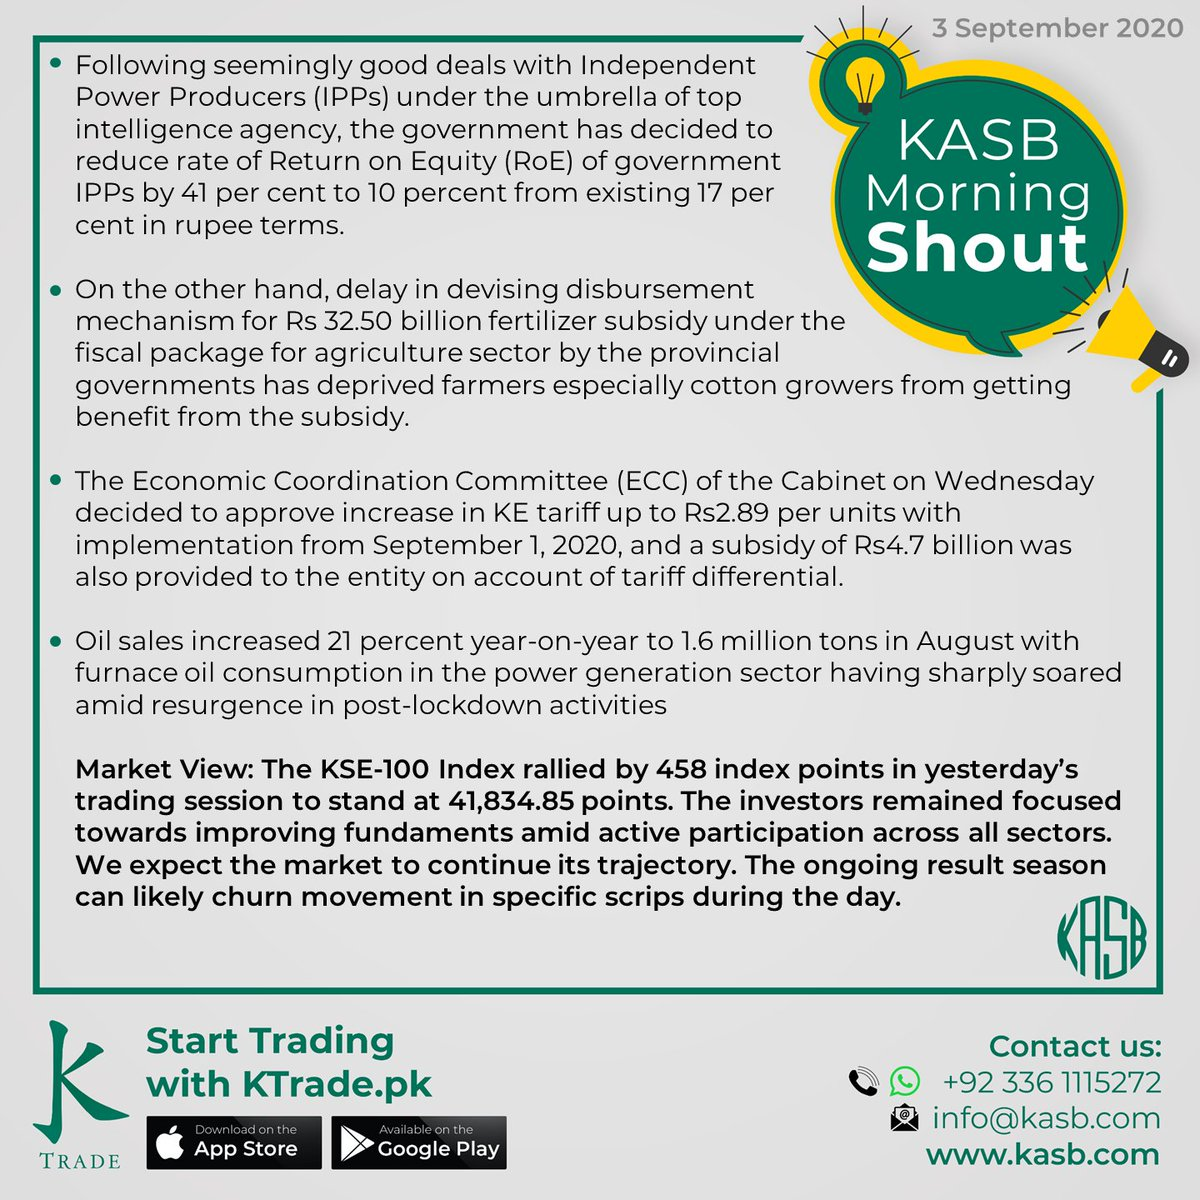 KASB Morning Shout: Our views on today's news #kasb #smartinvesting #psx #stockmarket #KTrade #onlinetrading #pakistaneconomy #imrankhan #sbp #inflation #kse100 #brokeragehouse #psxstocks #marketupdate #emergingmarkets #frontiermarkets #news #morning #today #views https://t.co/eJLGGdHbEg